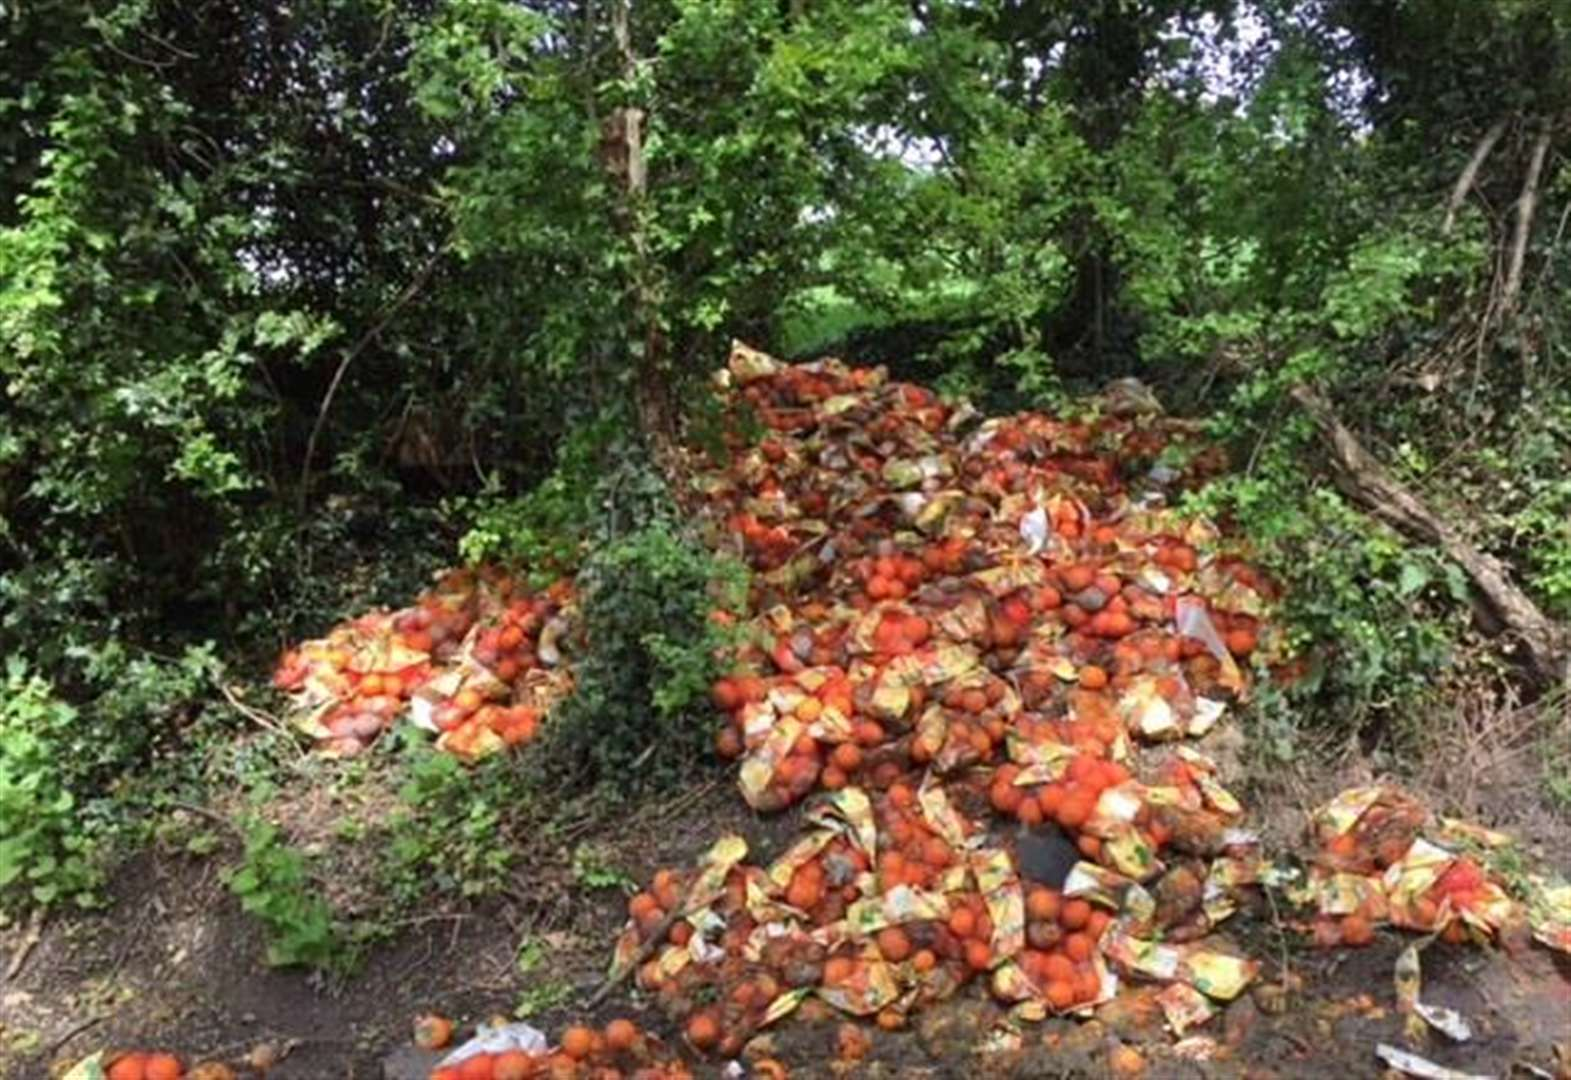 Hundreds of oranges dumped at roadside